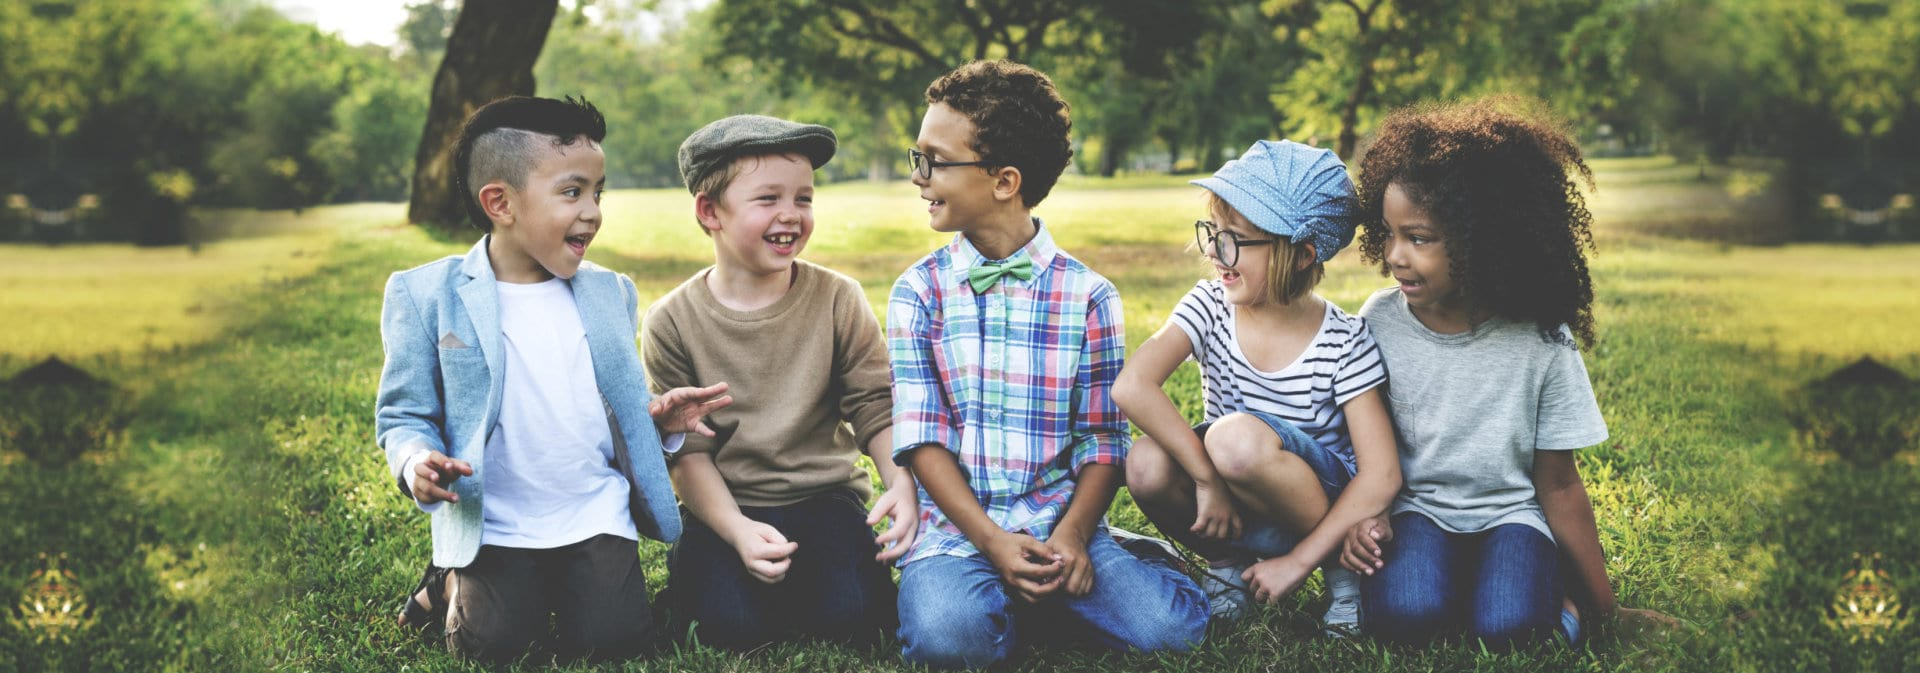 Group of kids look happy sitting on the grass